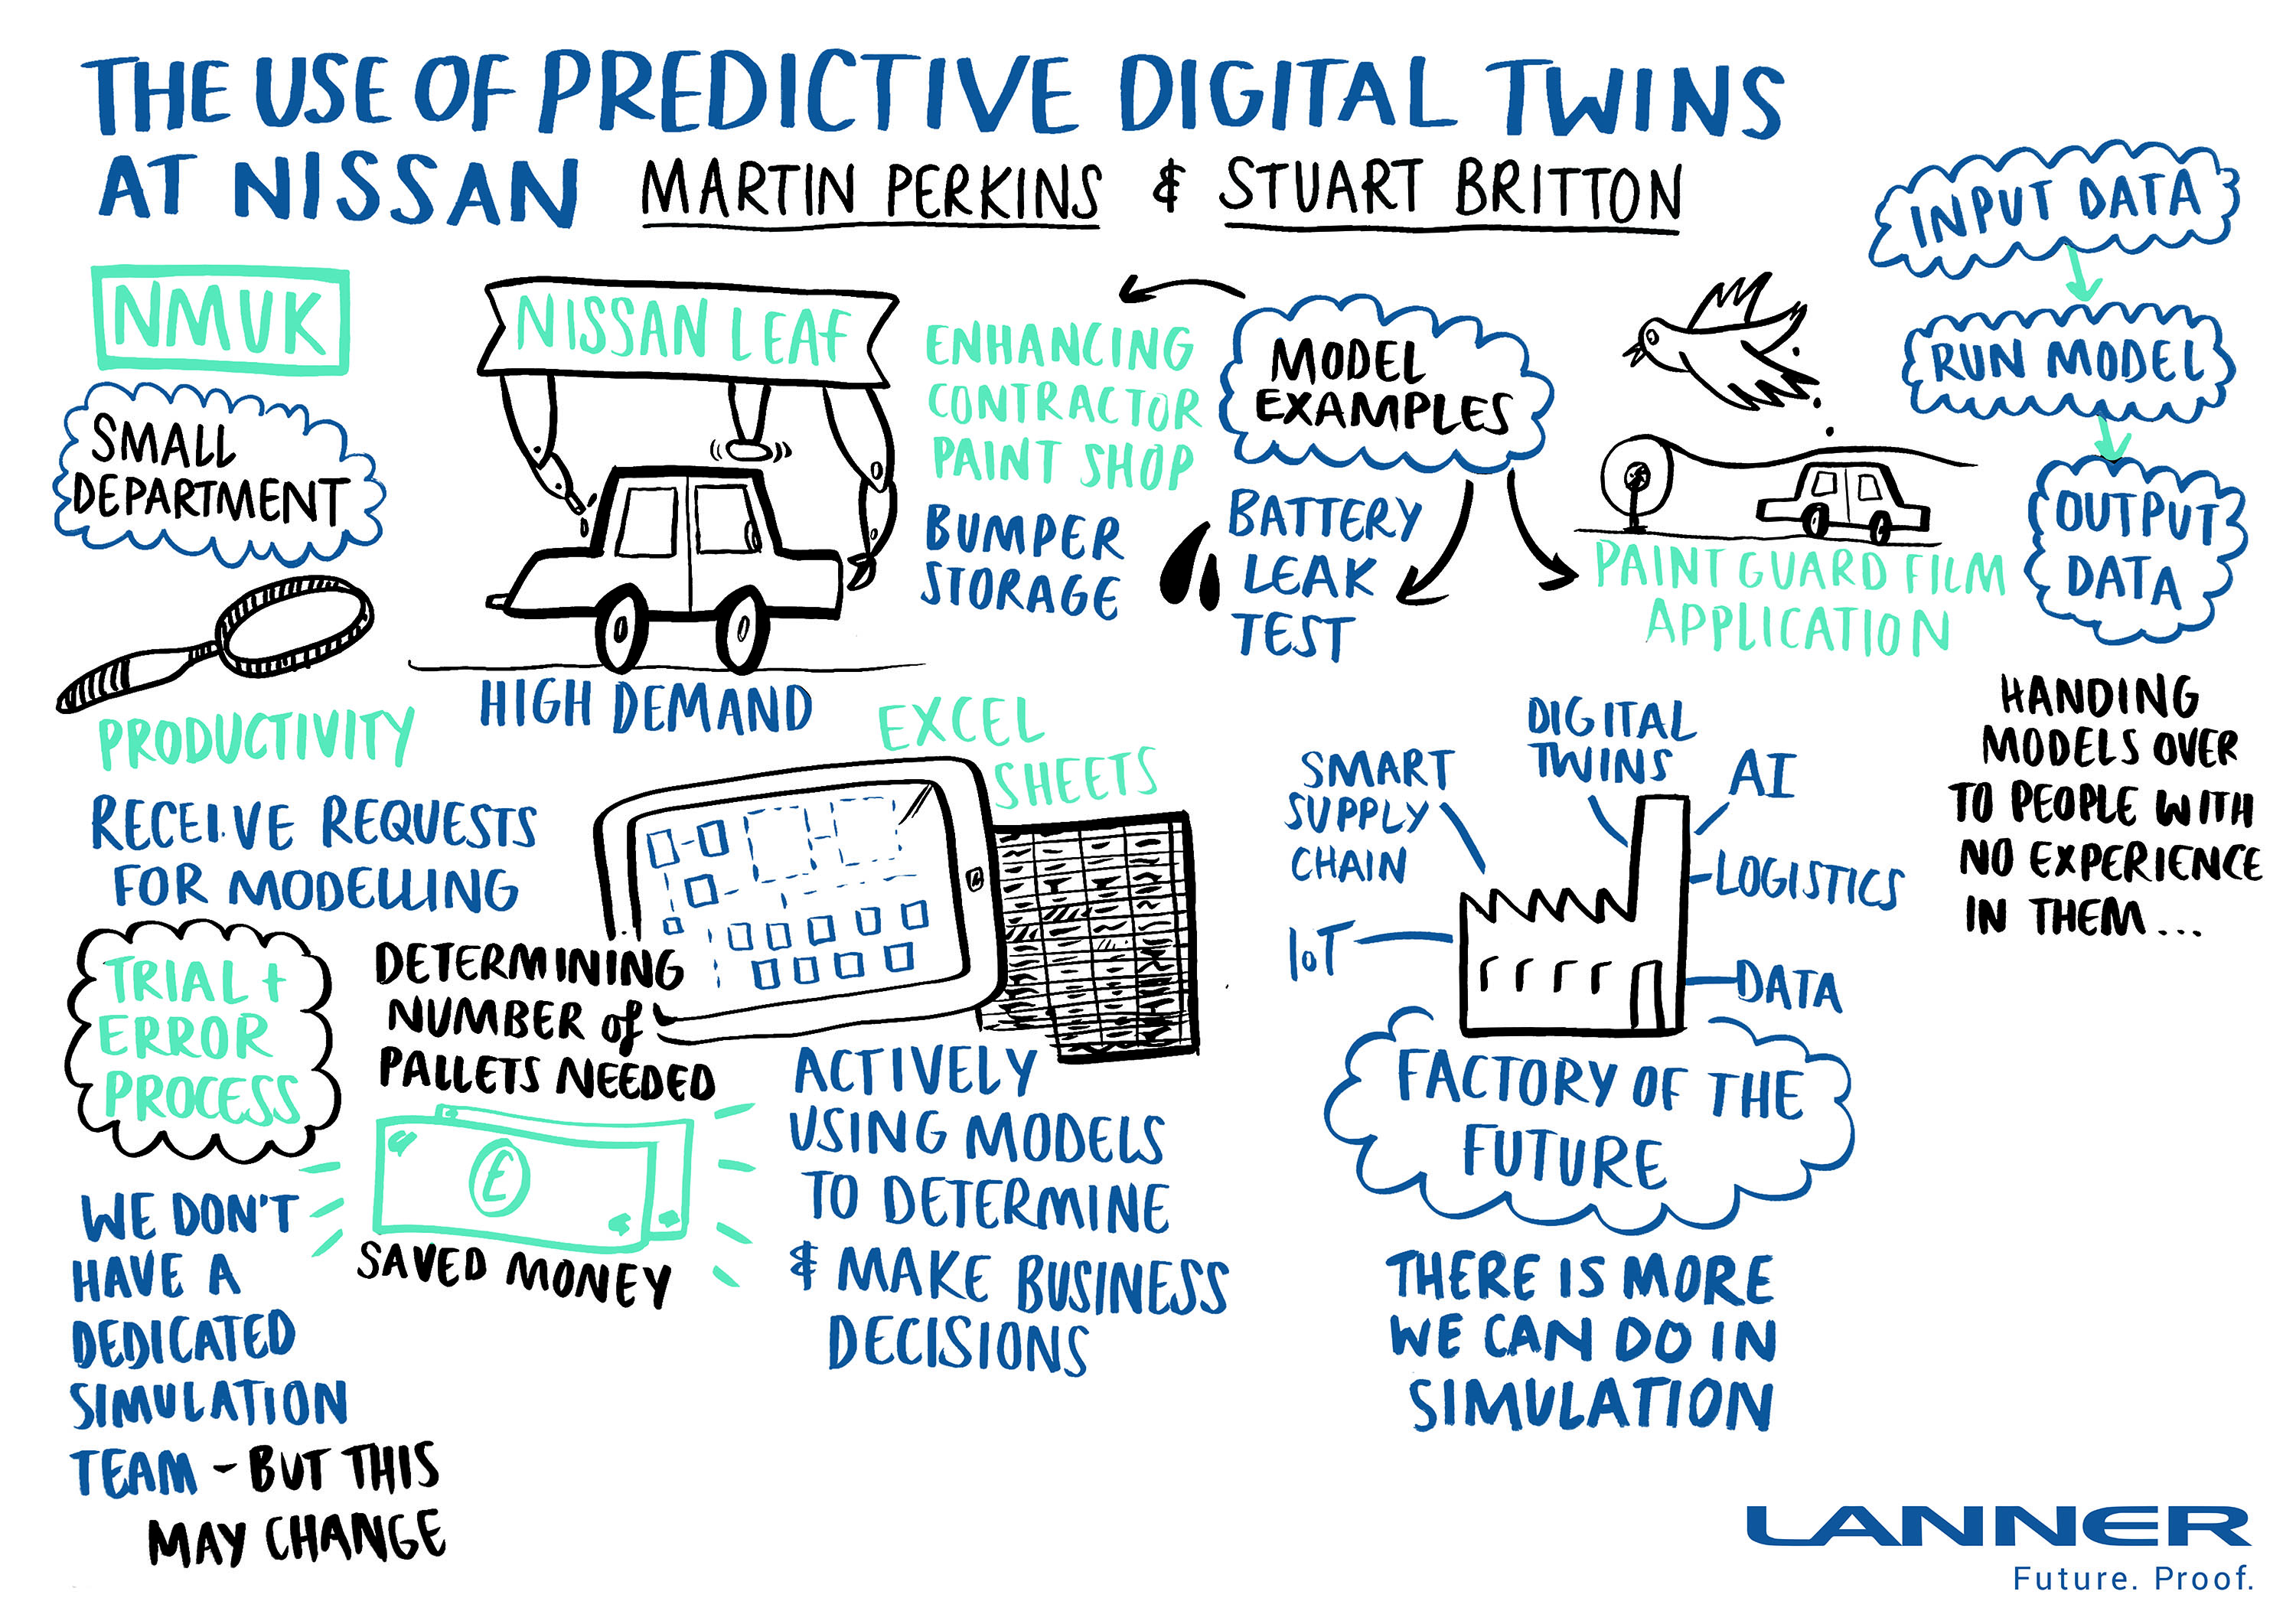 2453-05_The_use_of_predictive_digital_twins.jpg